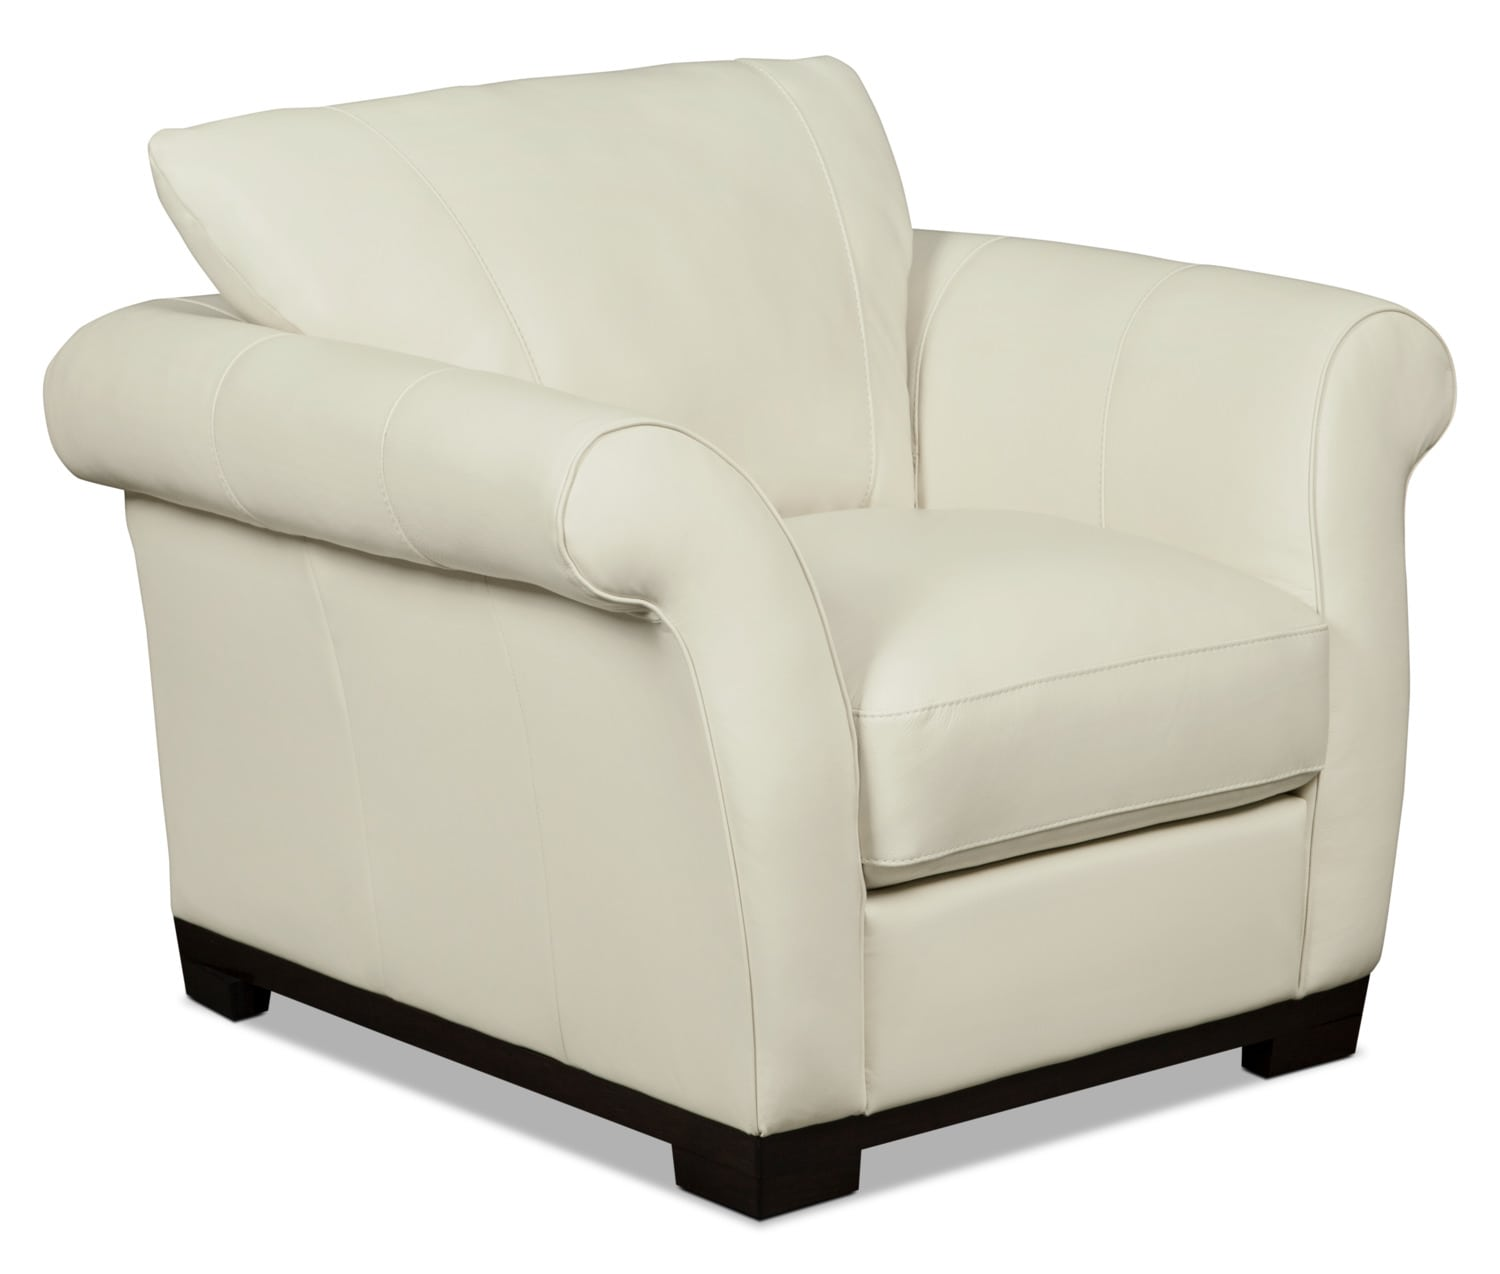 Layla Genuine Leather Chair u2013 Ivory : The Brick